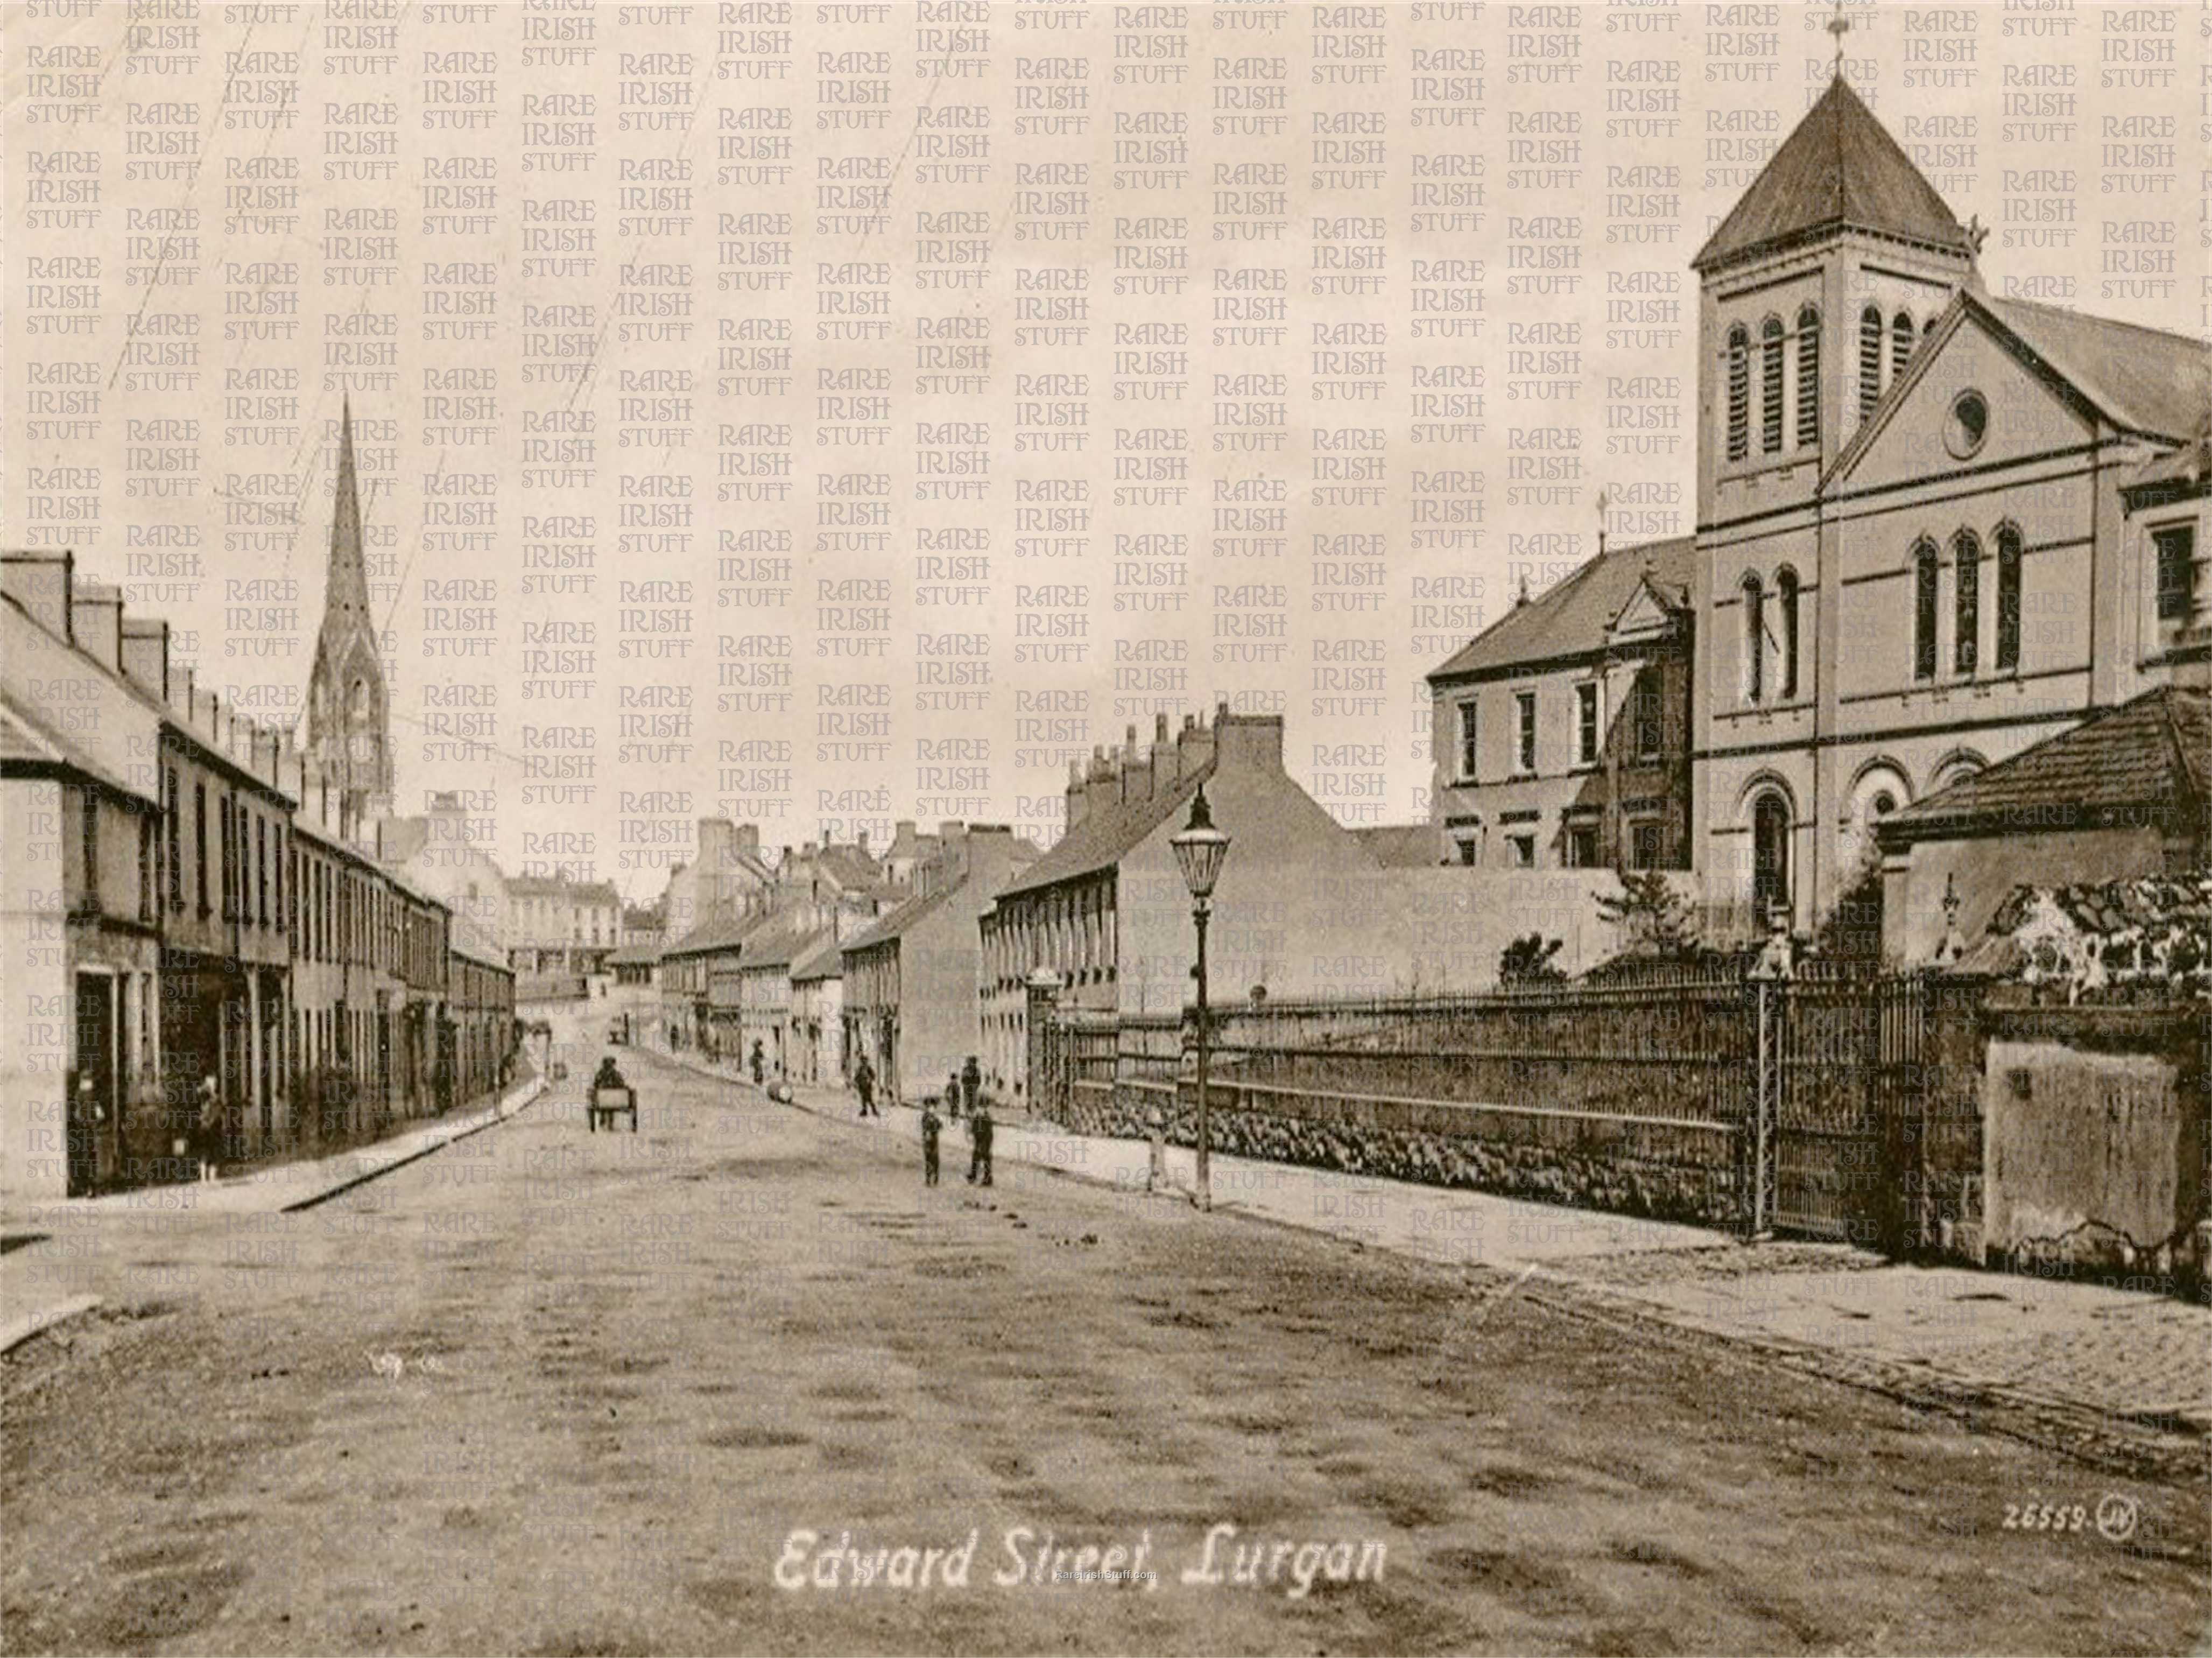 1  Armagh  Lurgan  Edward  St old  Irish  Photo  Thumbnail0